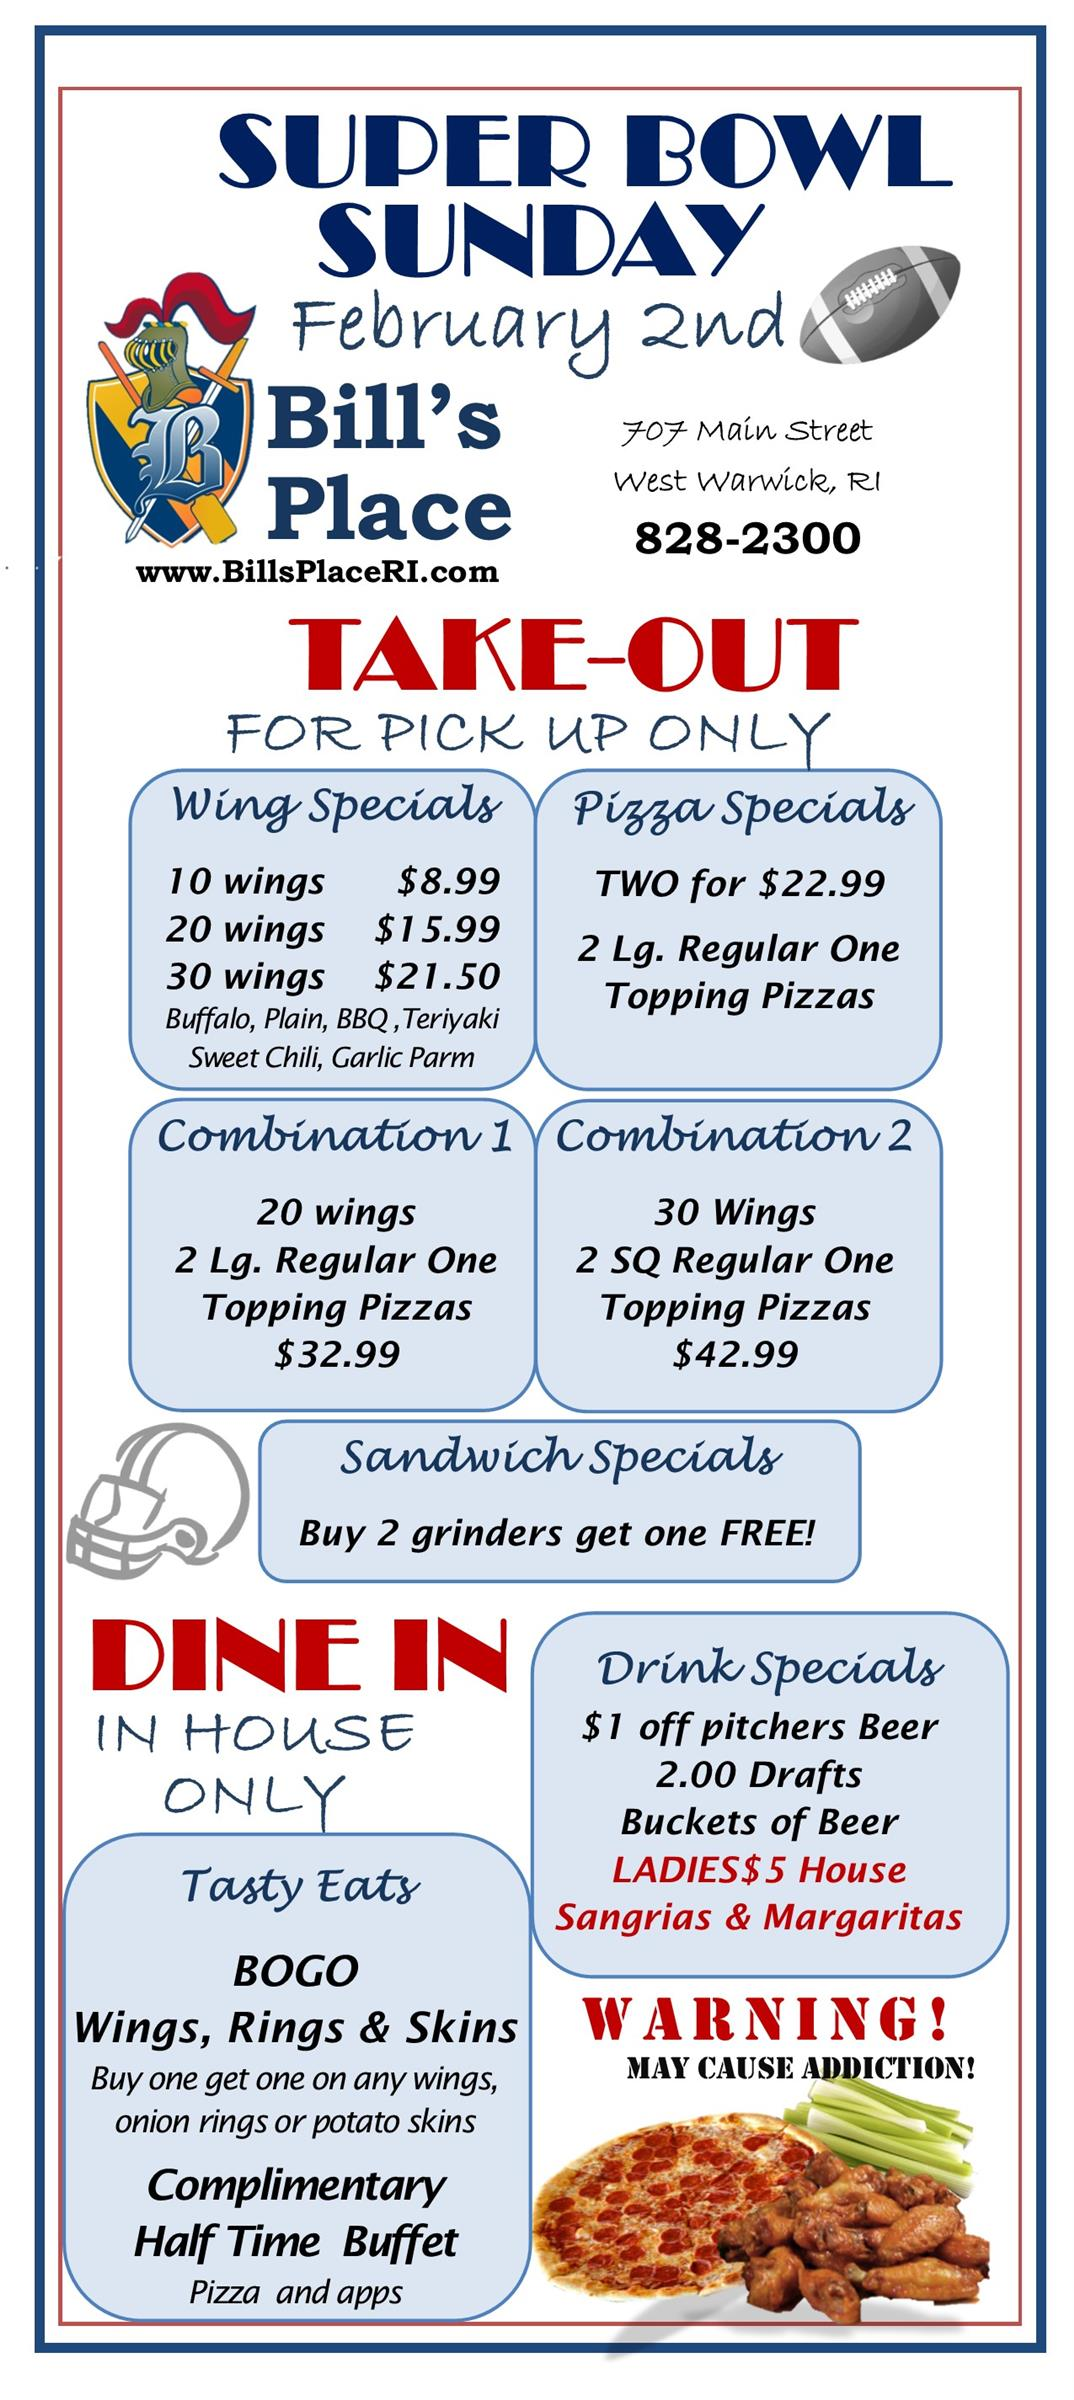 Super Bowl Sunday | February 2nd | Bill's Place | Take out for pick up only | Wing Specials | Pizza Specials | Combination 1 | Combination 2 | Sandwich Specials | Drink Specials